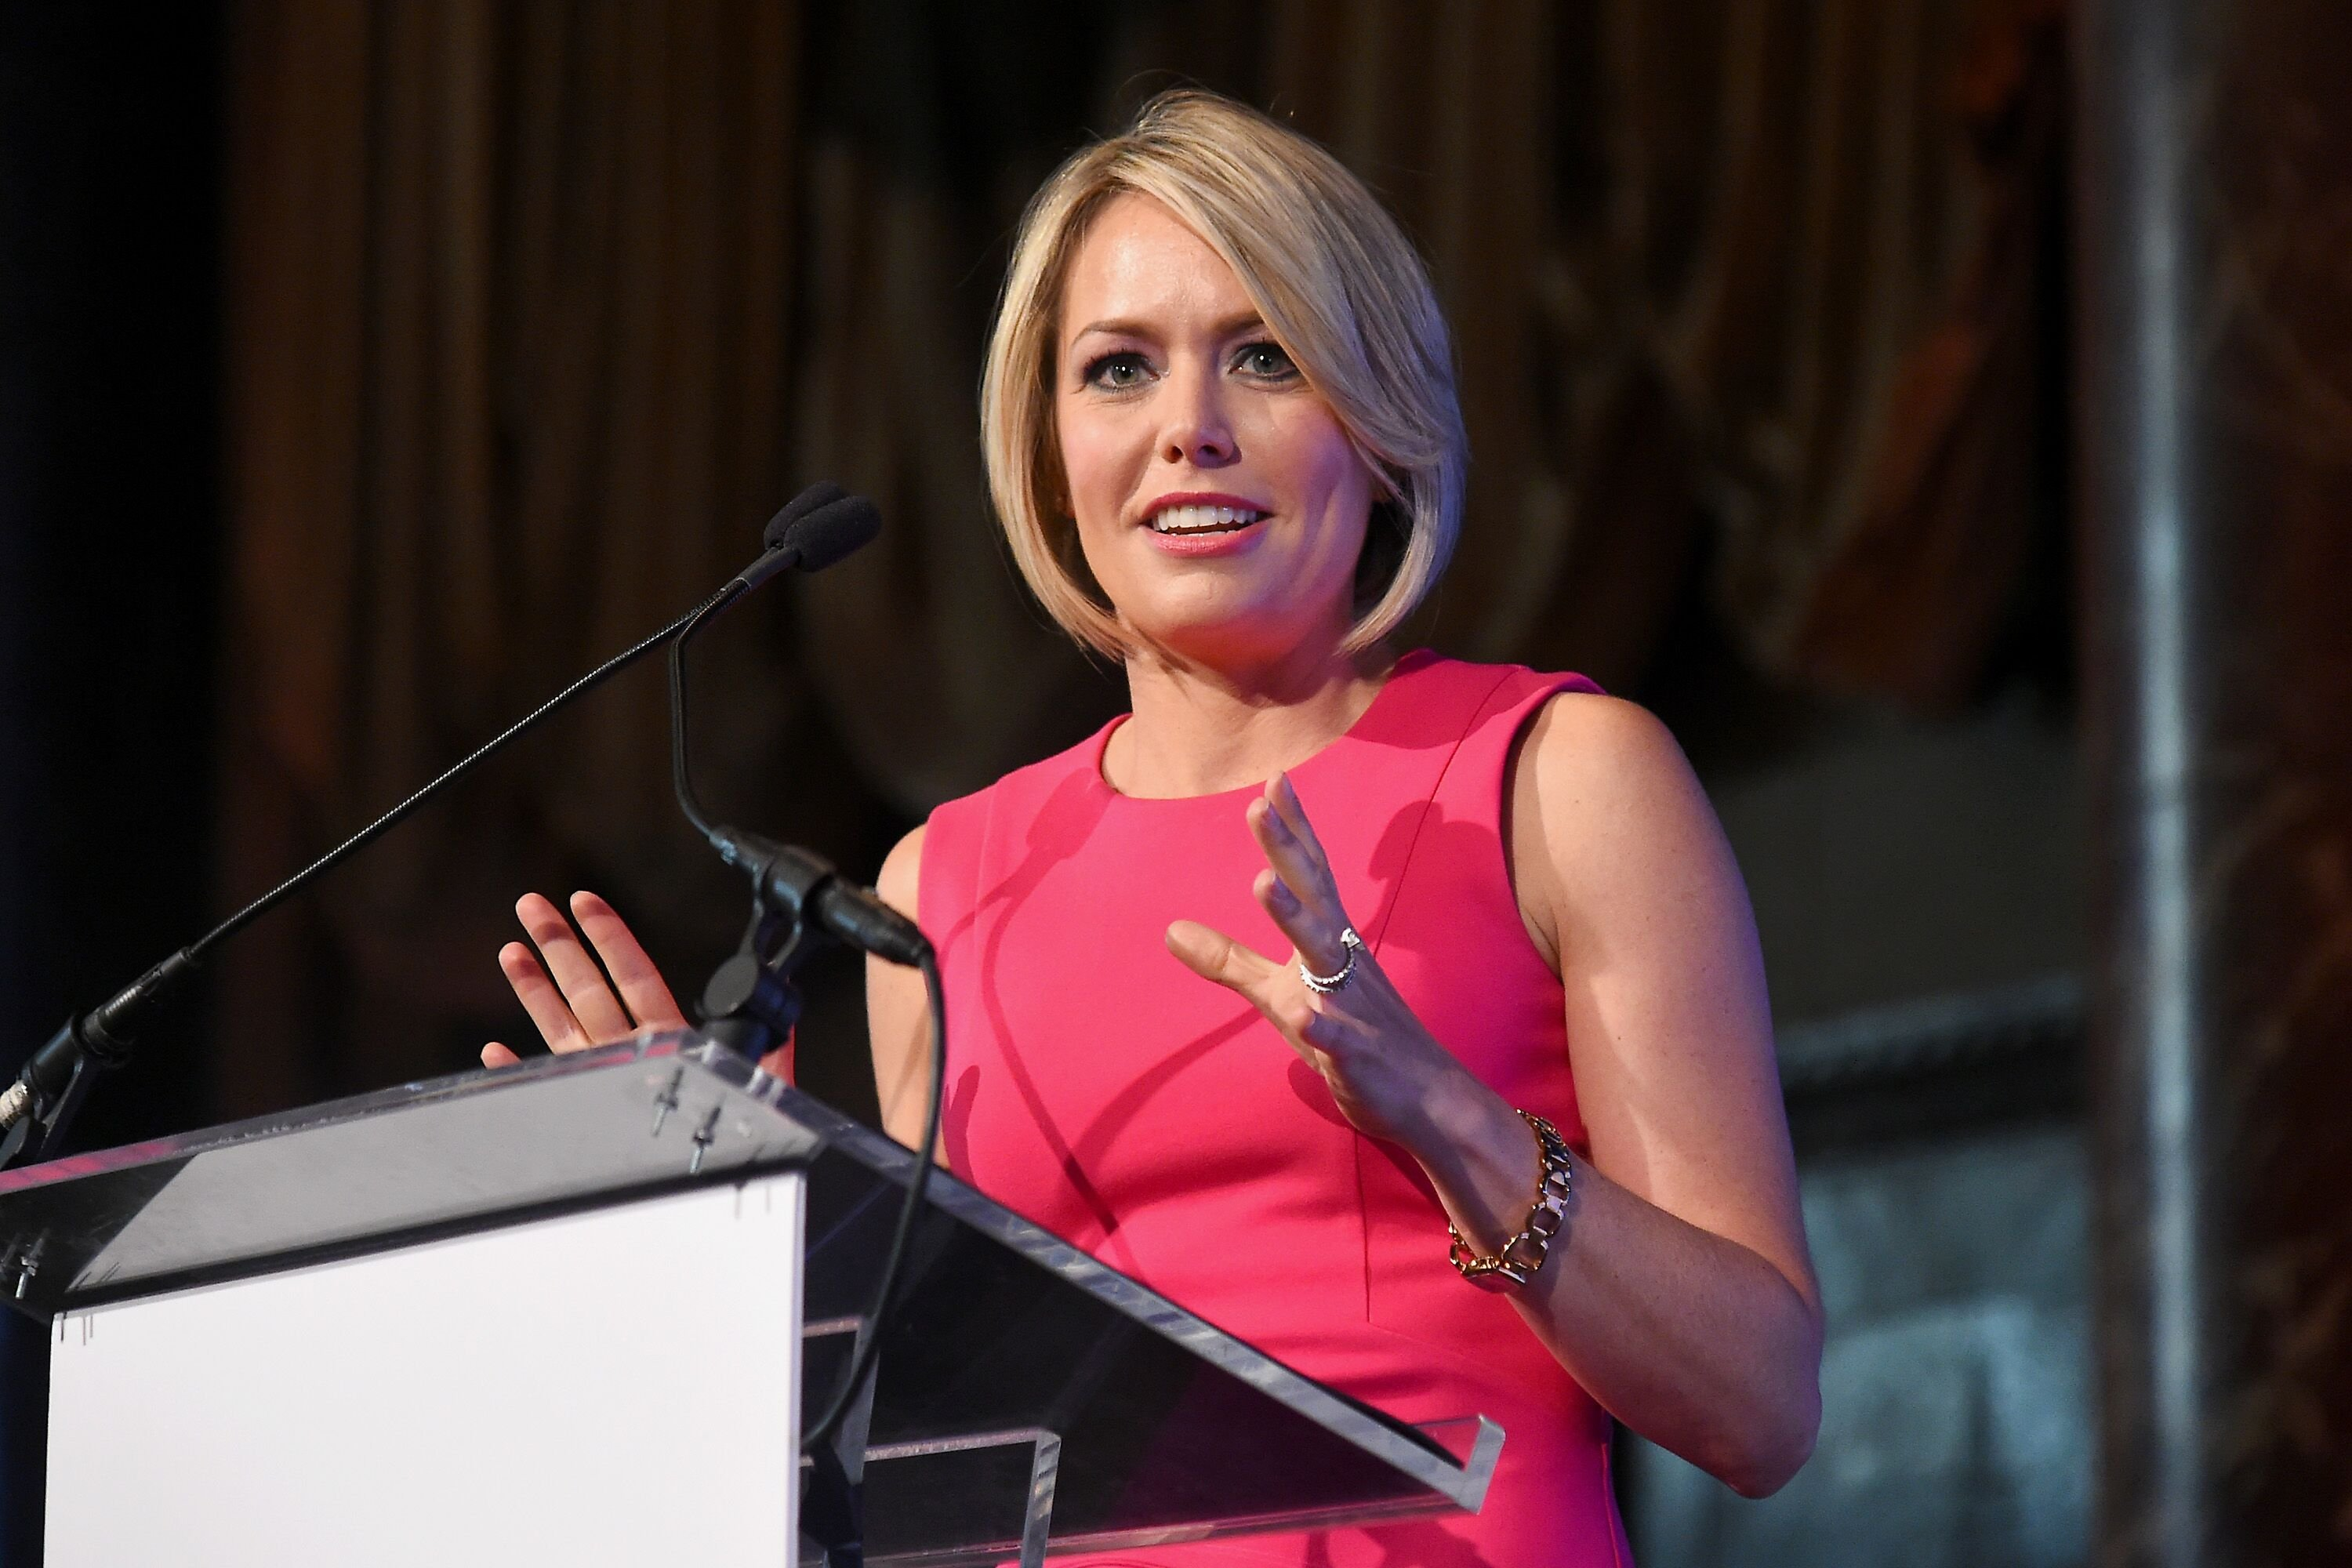 Dylan Dreyer attends the 42nd Annual Gracie Awards. | Photo: Getty Images